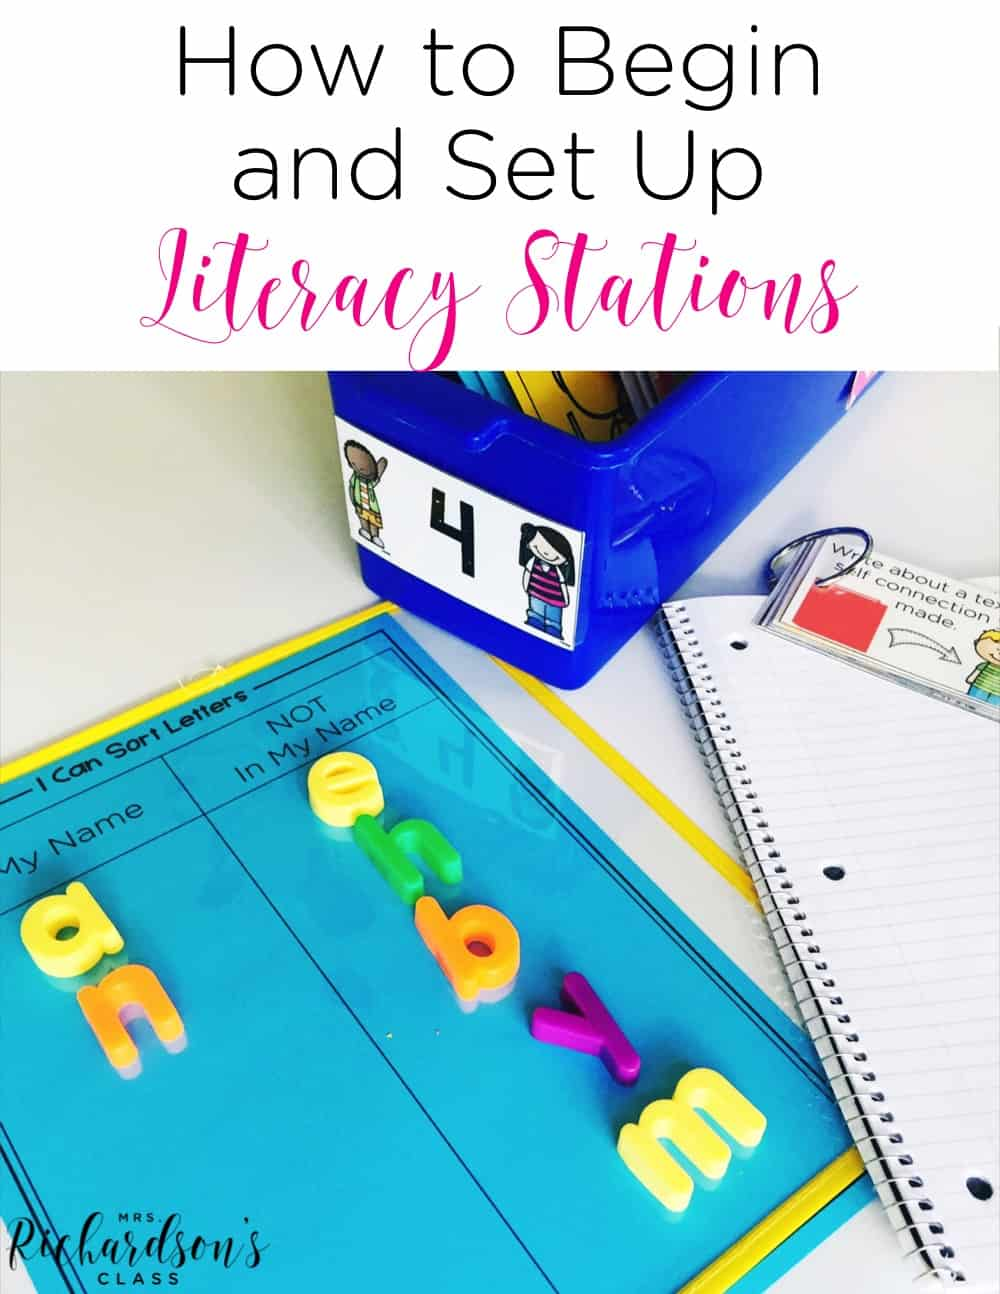 Beginning literacy stations can seem like a huge task, but it really is simple! No more changing stations out each week! Keep your learners engaged and make your job easier! #literacystations #literacycenters #firstgrade #kindergarten #organization